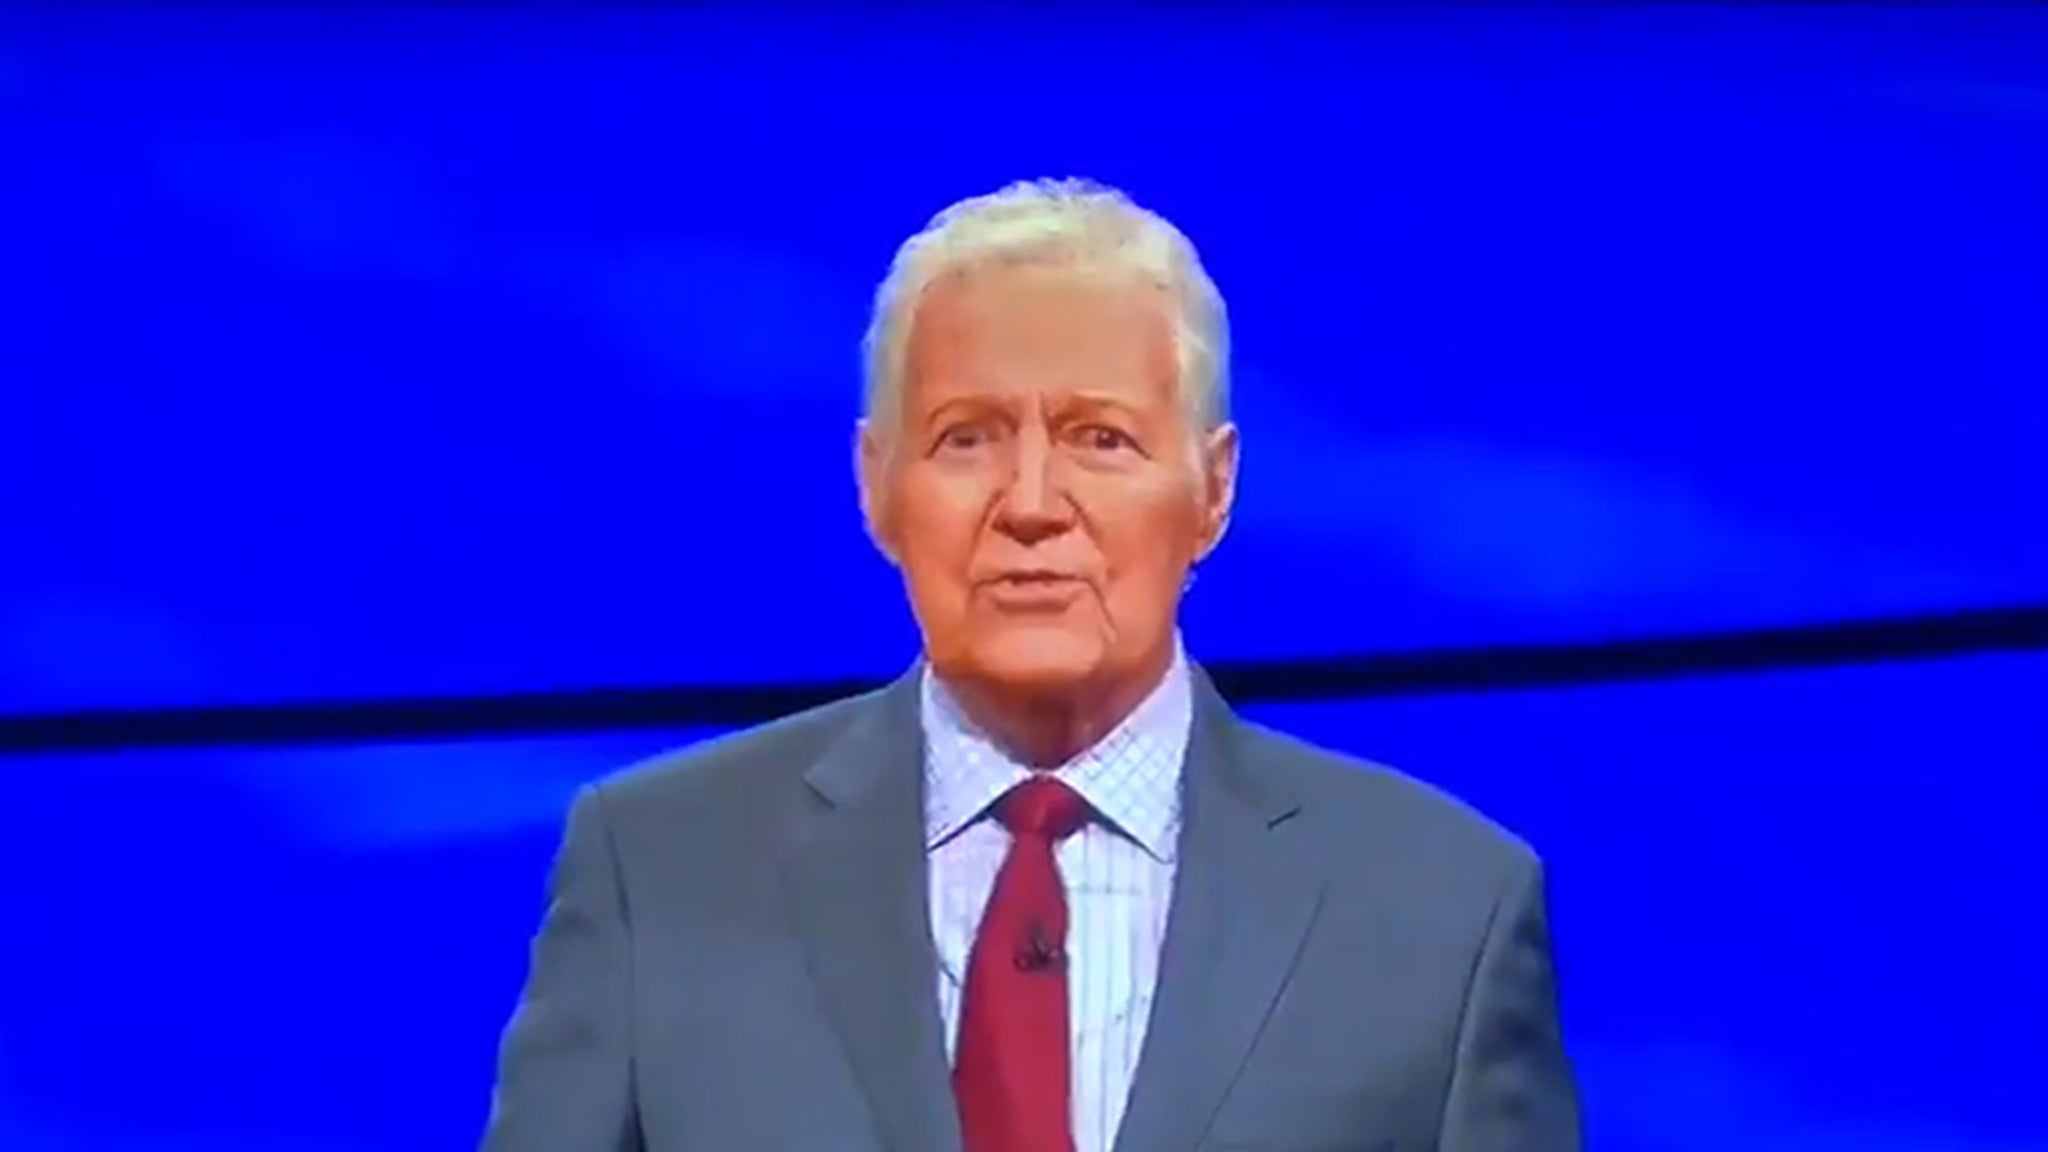 Entertainment News Today- Alex Trebek's Final Sign Off For 'Jeopardy!' Before His Death | NewsBurrow thumbnail